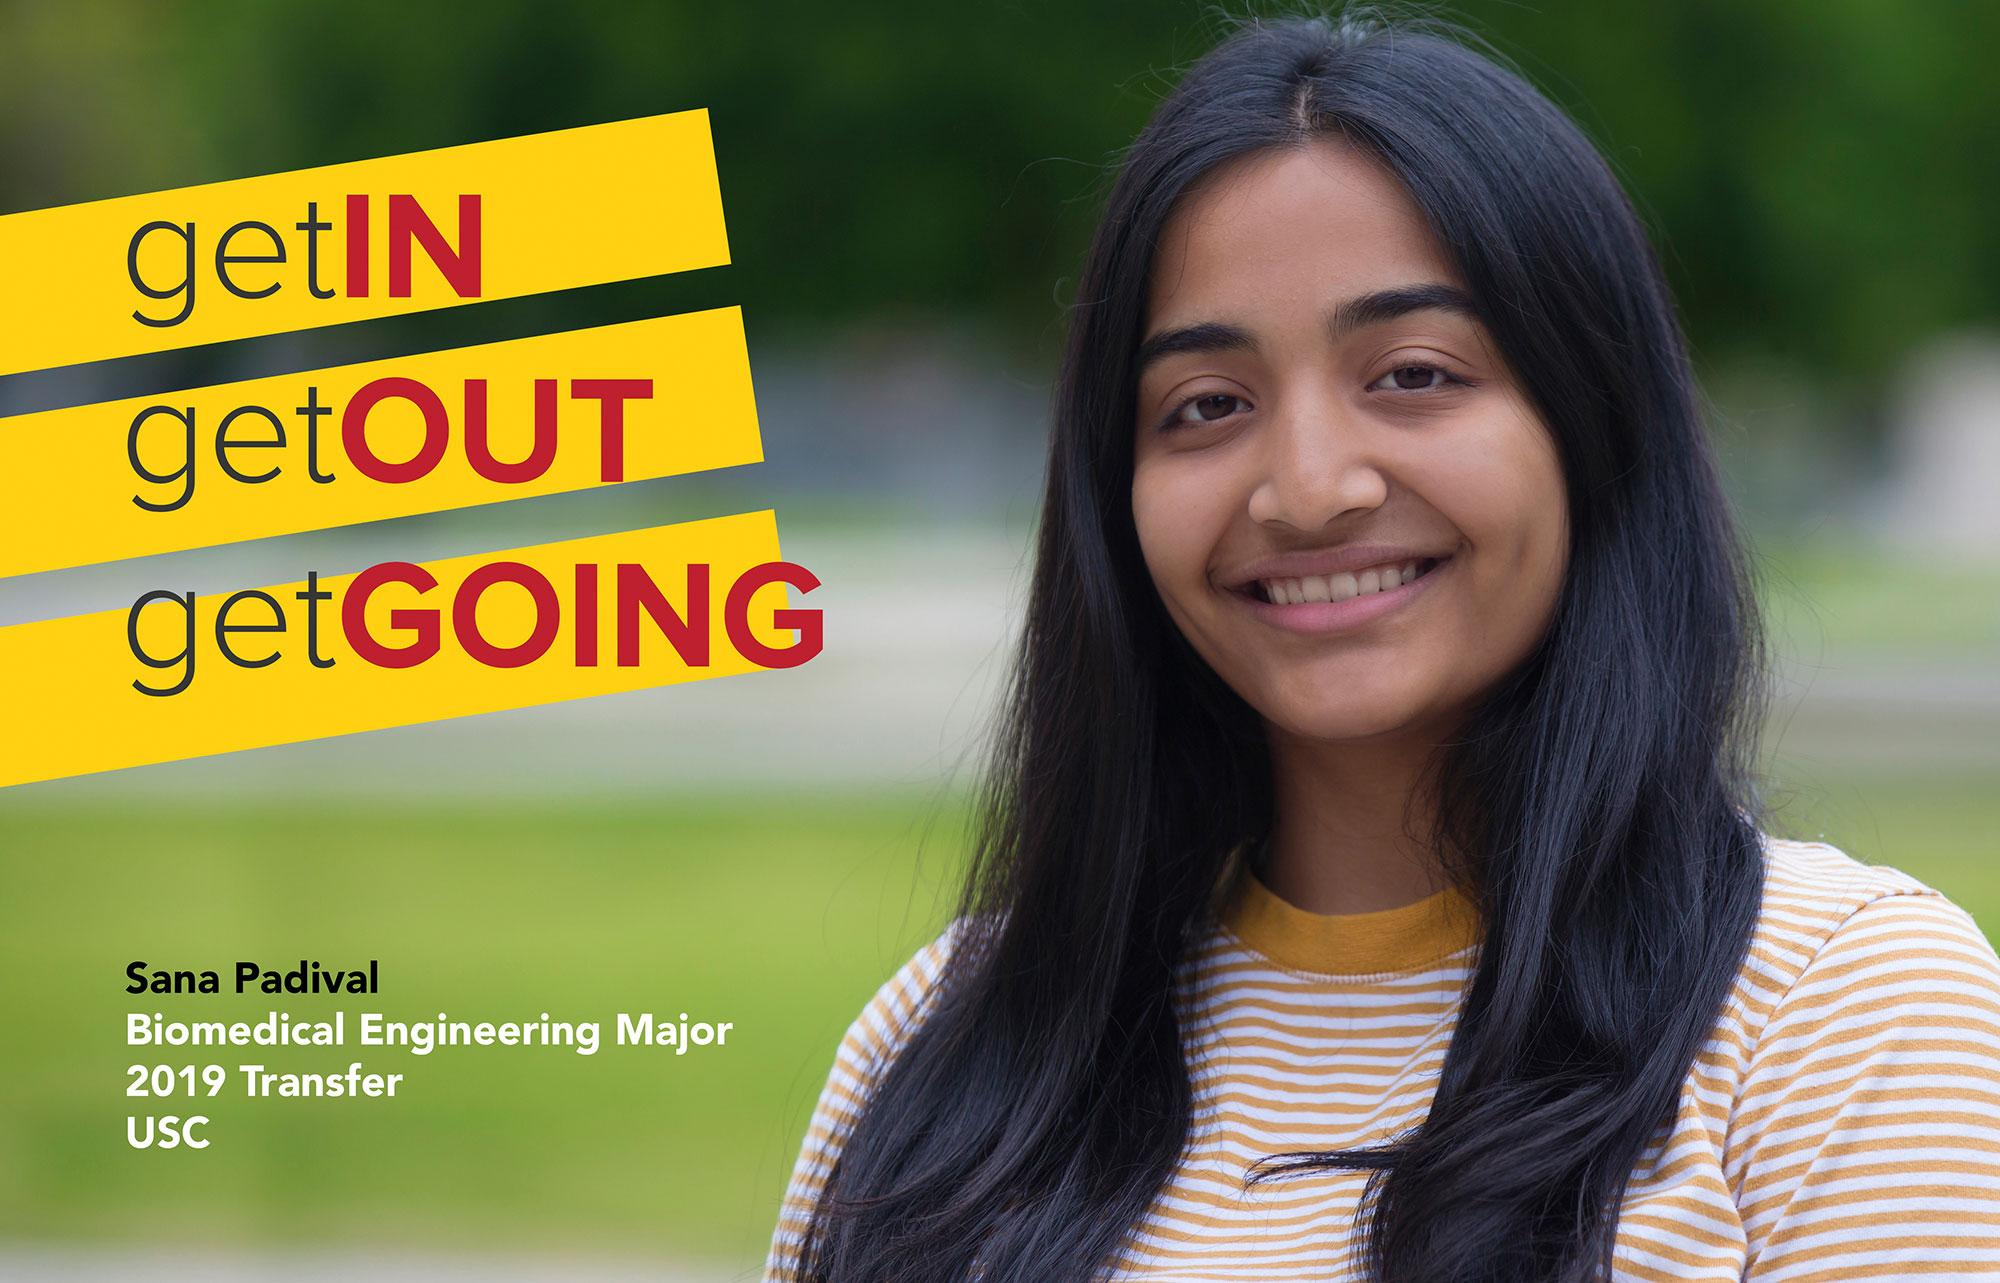 Sana Padival is a Biomedical Engineering major that transferred to USC in 2019.